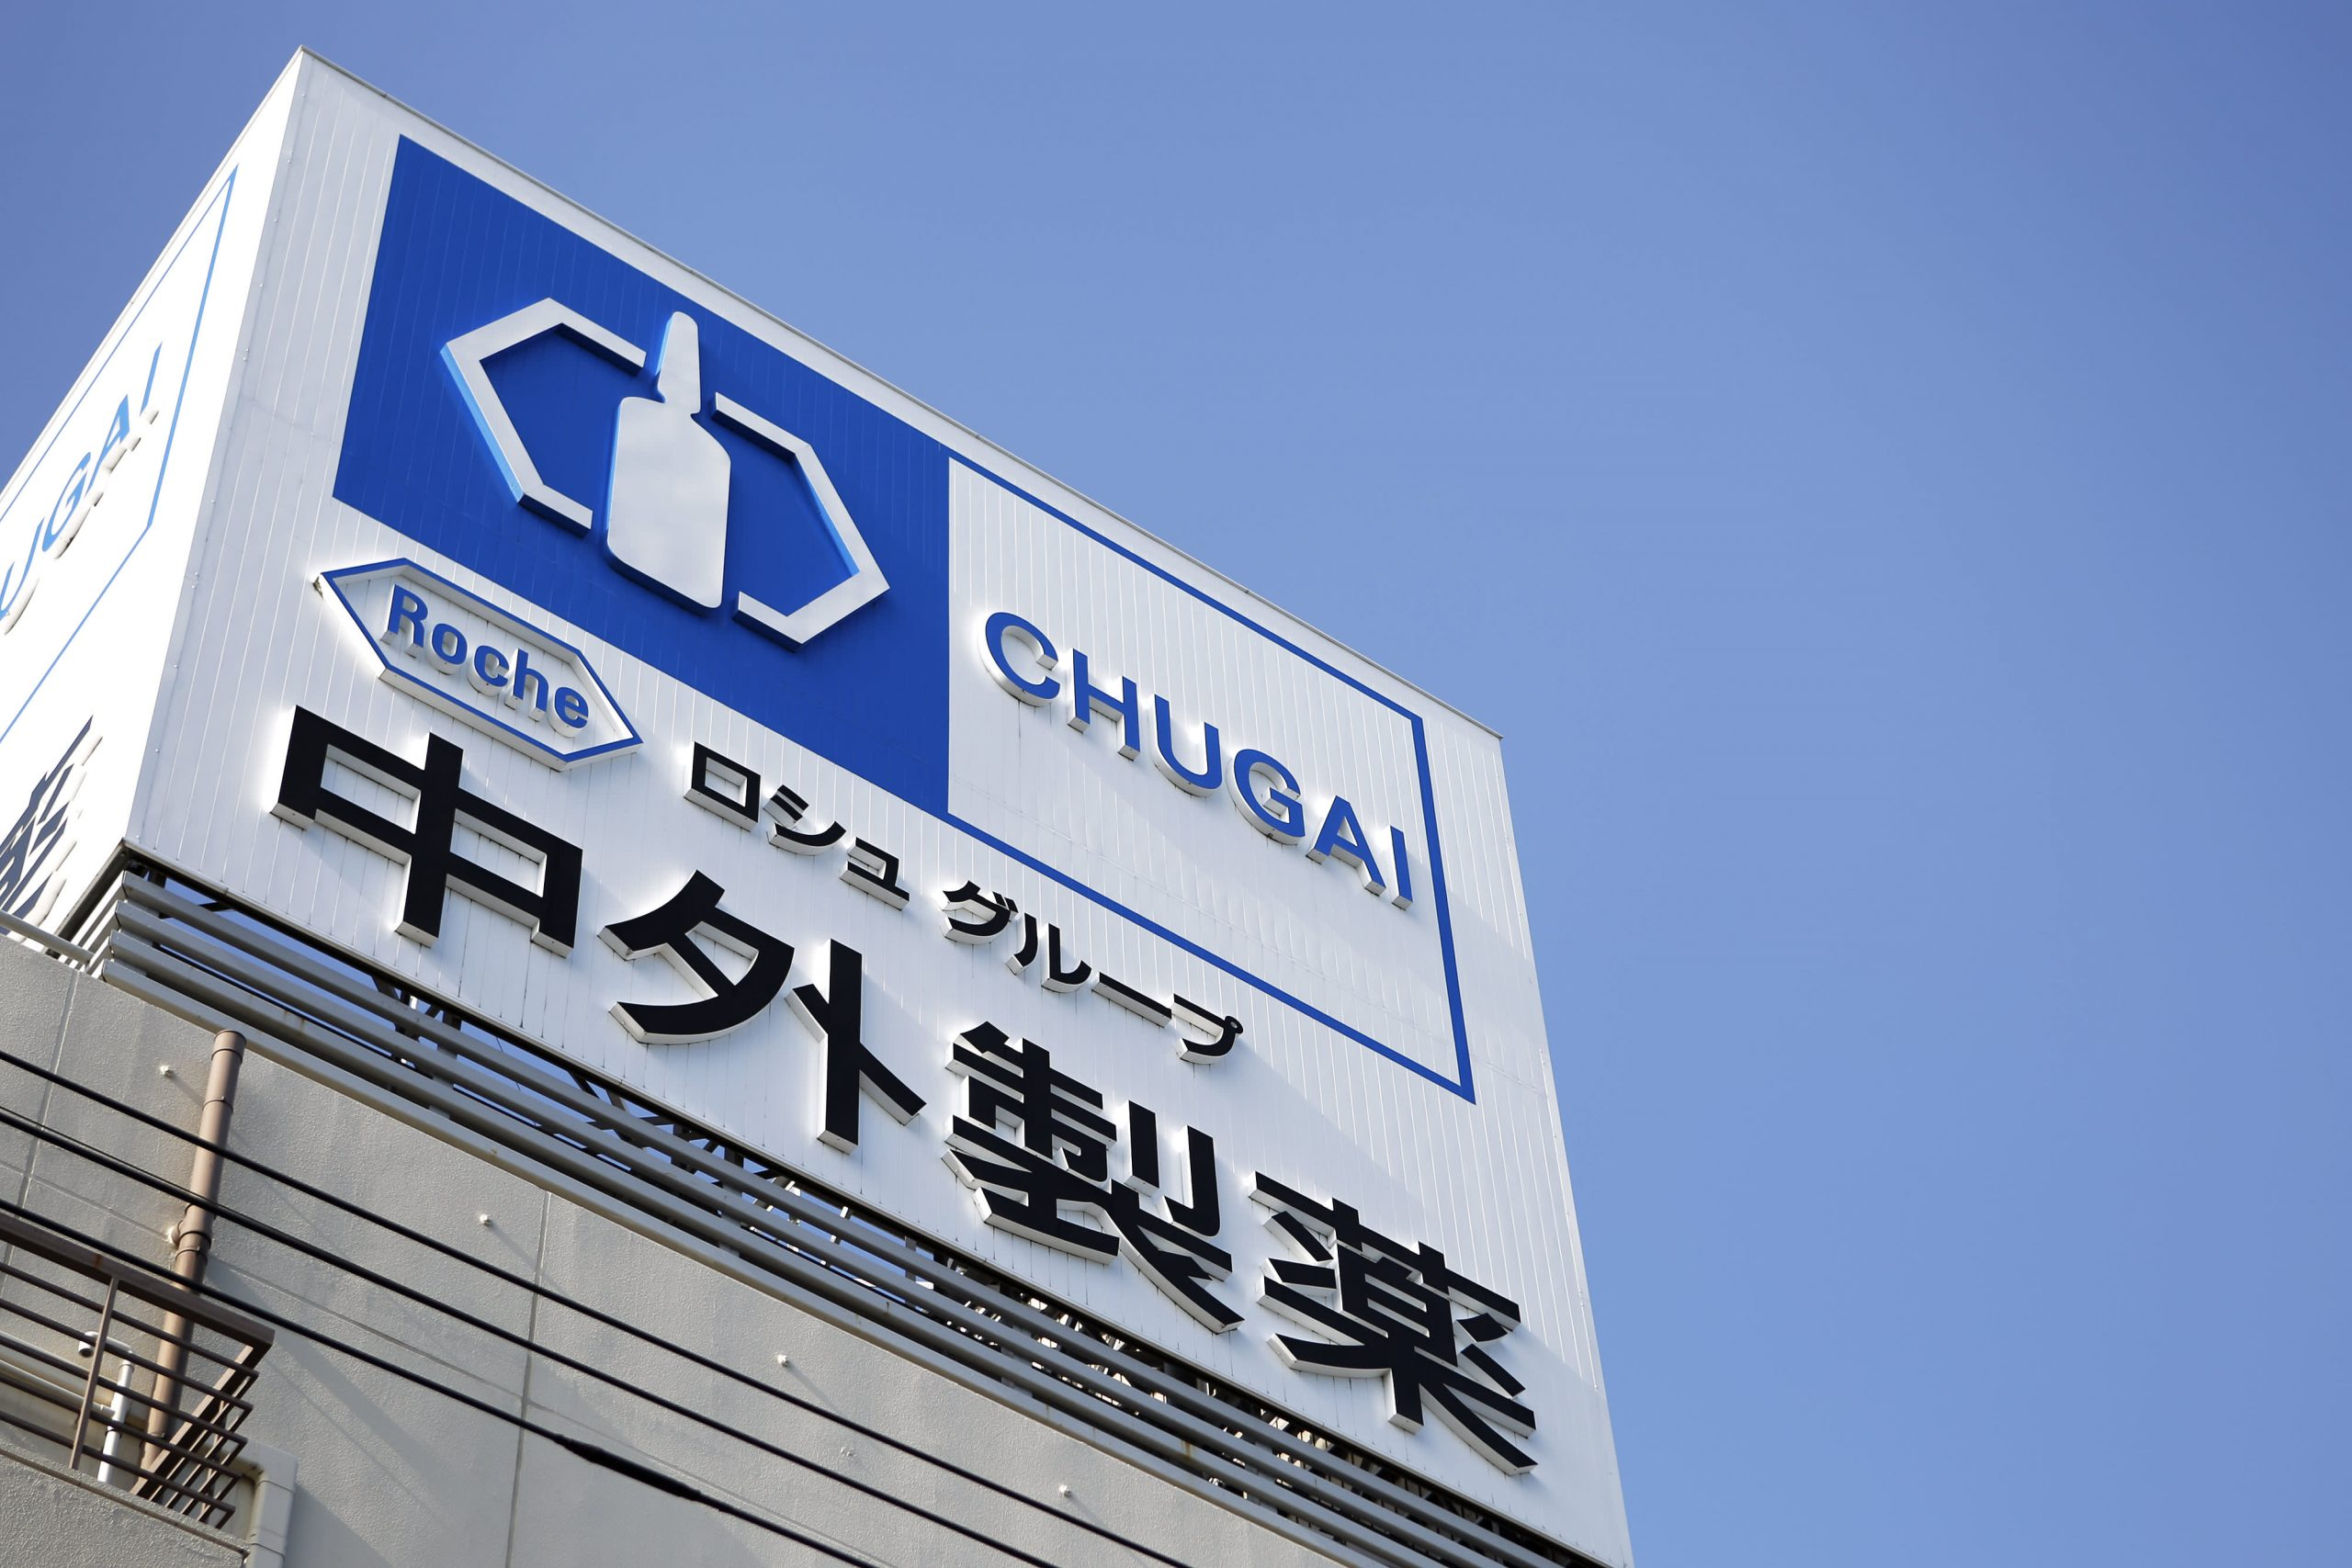 Japan's Chugai soars 7% after UK says its drug reduces hospital time for Covid patients